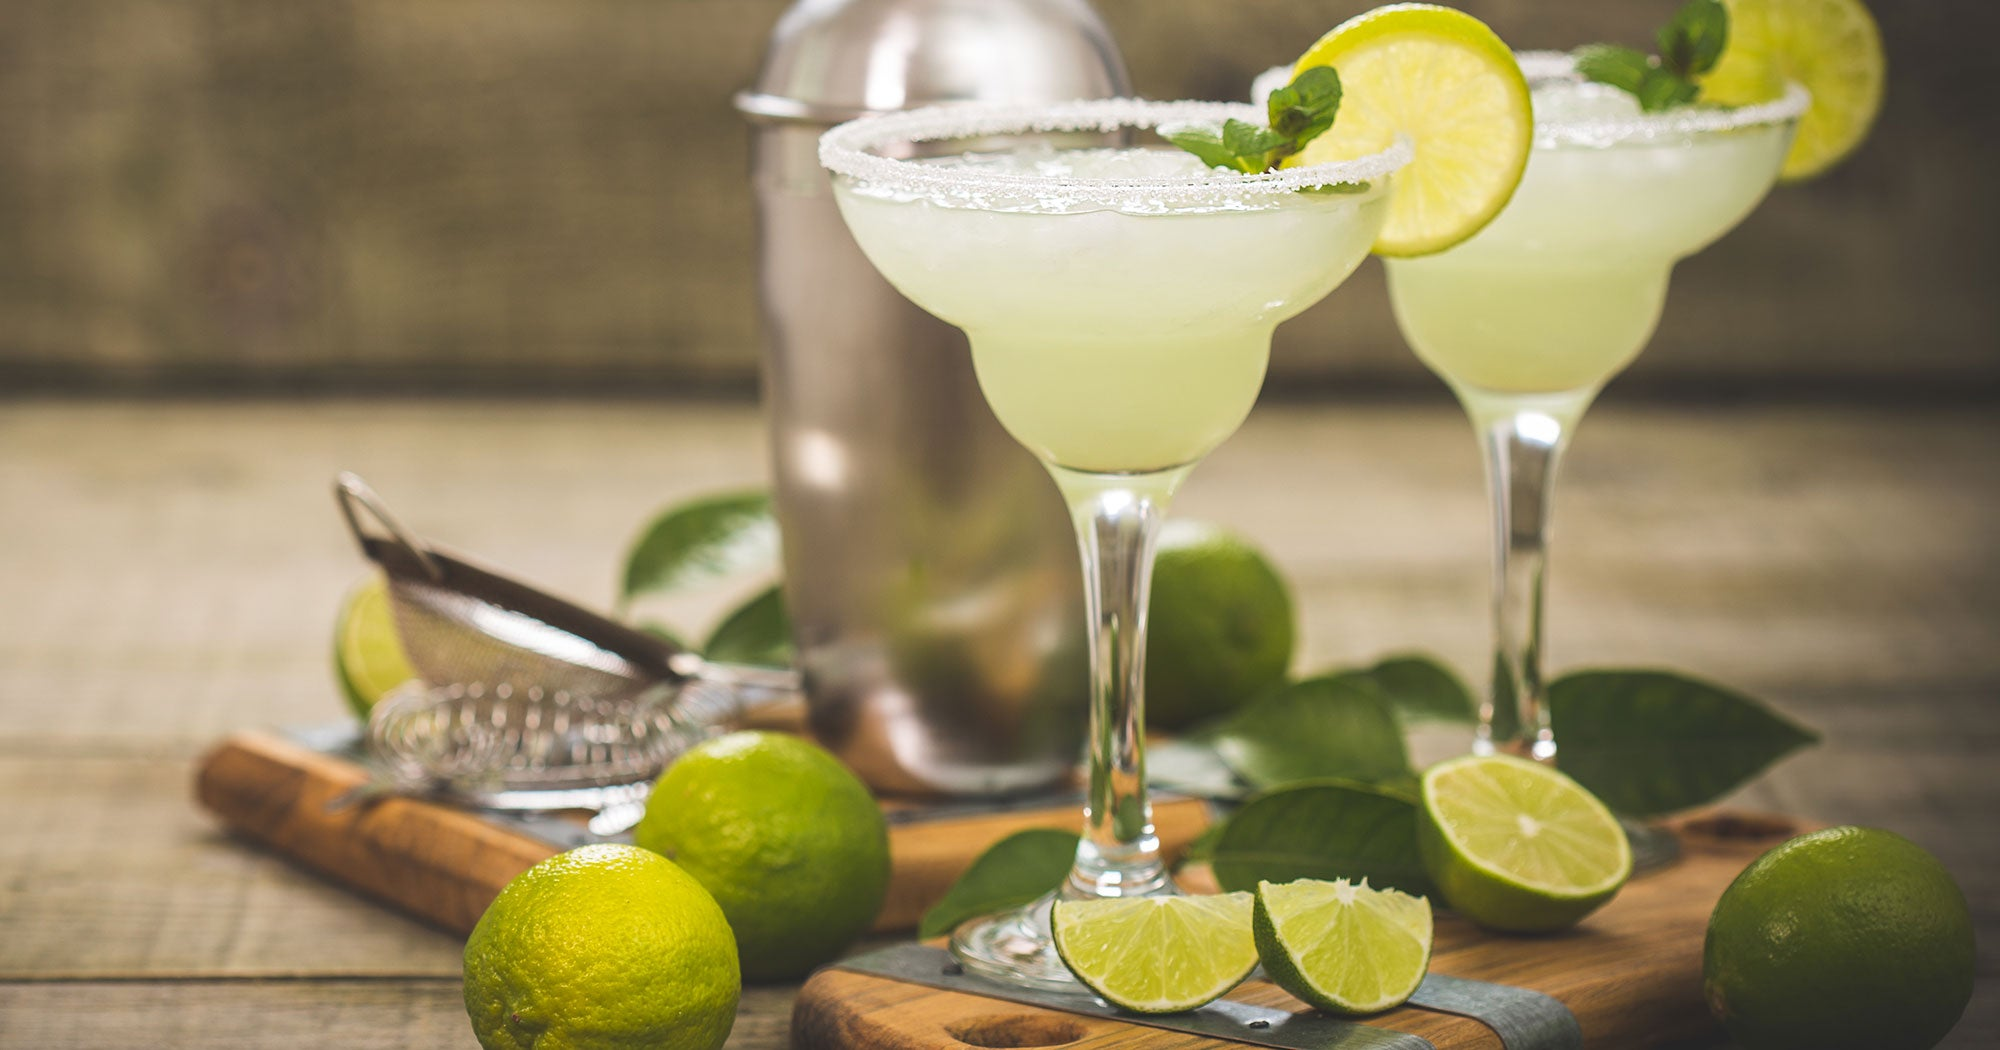 Tip That Glass Back, It's National Margarita Day — Here Are All The Deals You Need